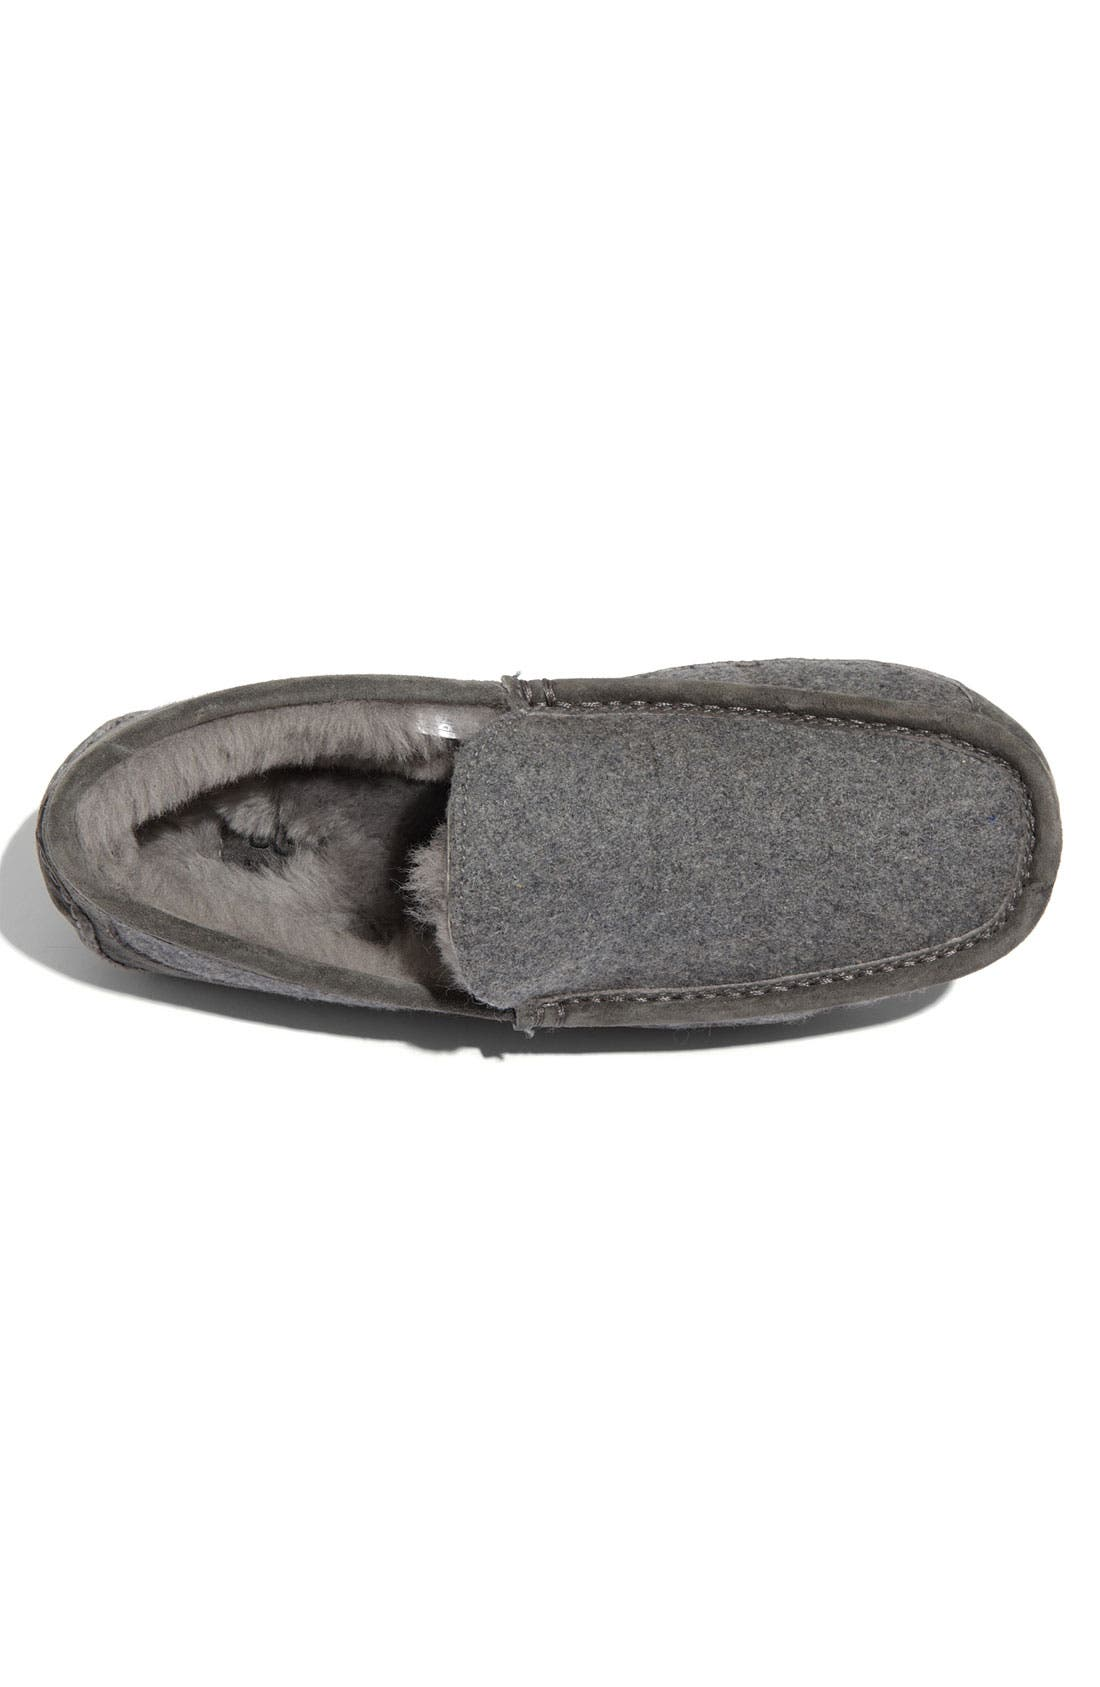 Australia 'Ascot' Wool Slipper,                             Alternate thumbnail 4, color,                             027